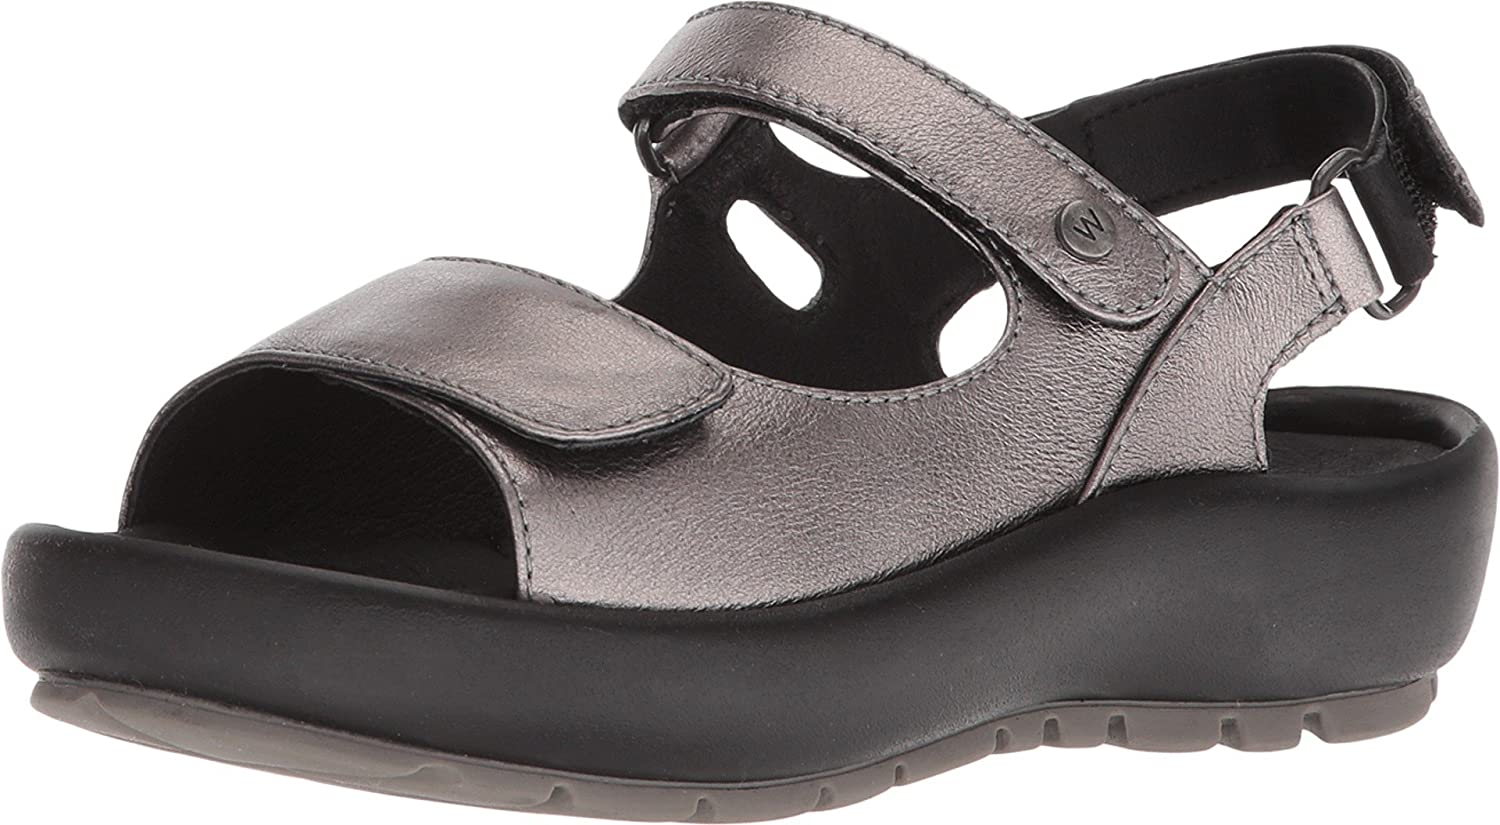 Kansas City Mall Wolky Women's SEAL limited product Flat Sandals